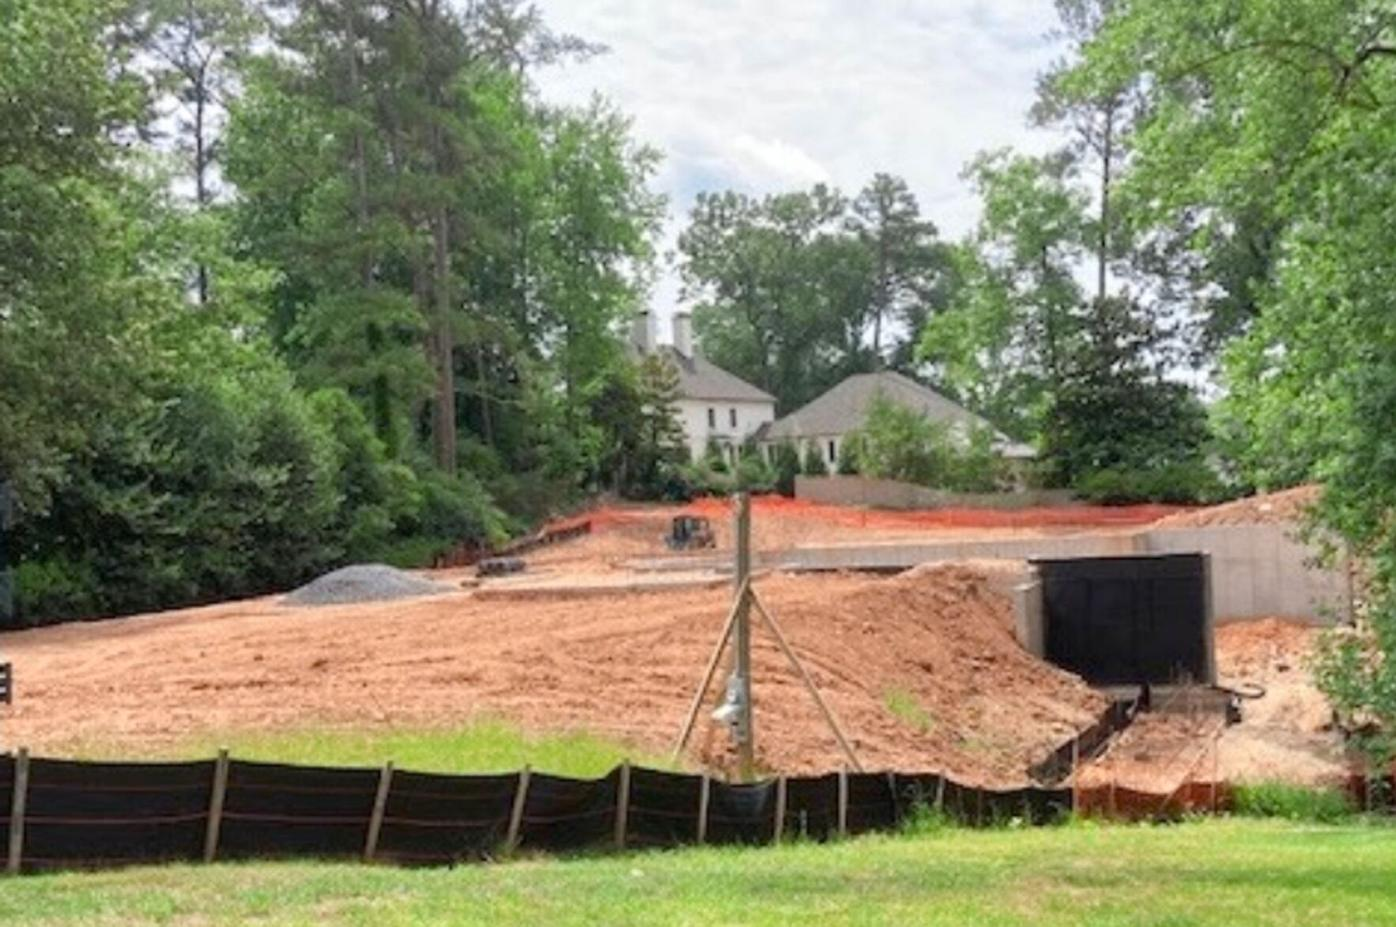 Atlanta Residents riled up over Proposed Changes to single family zoning